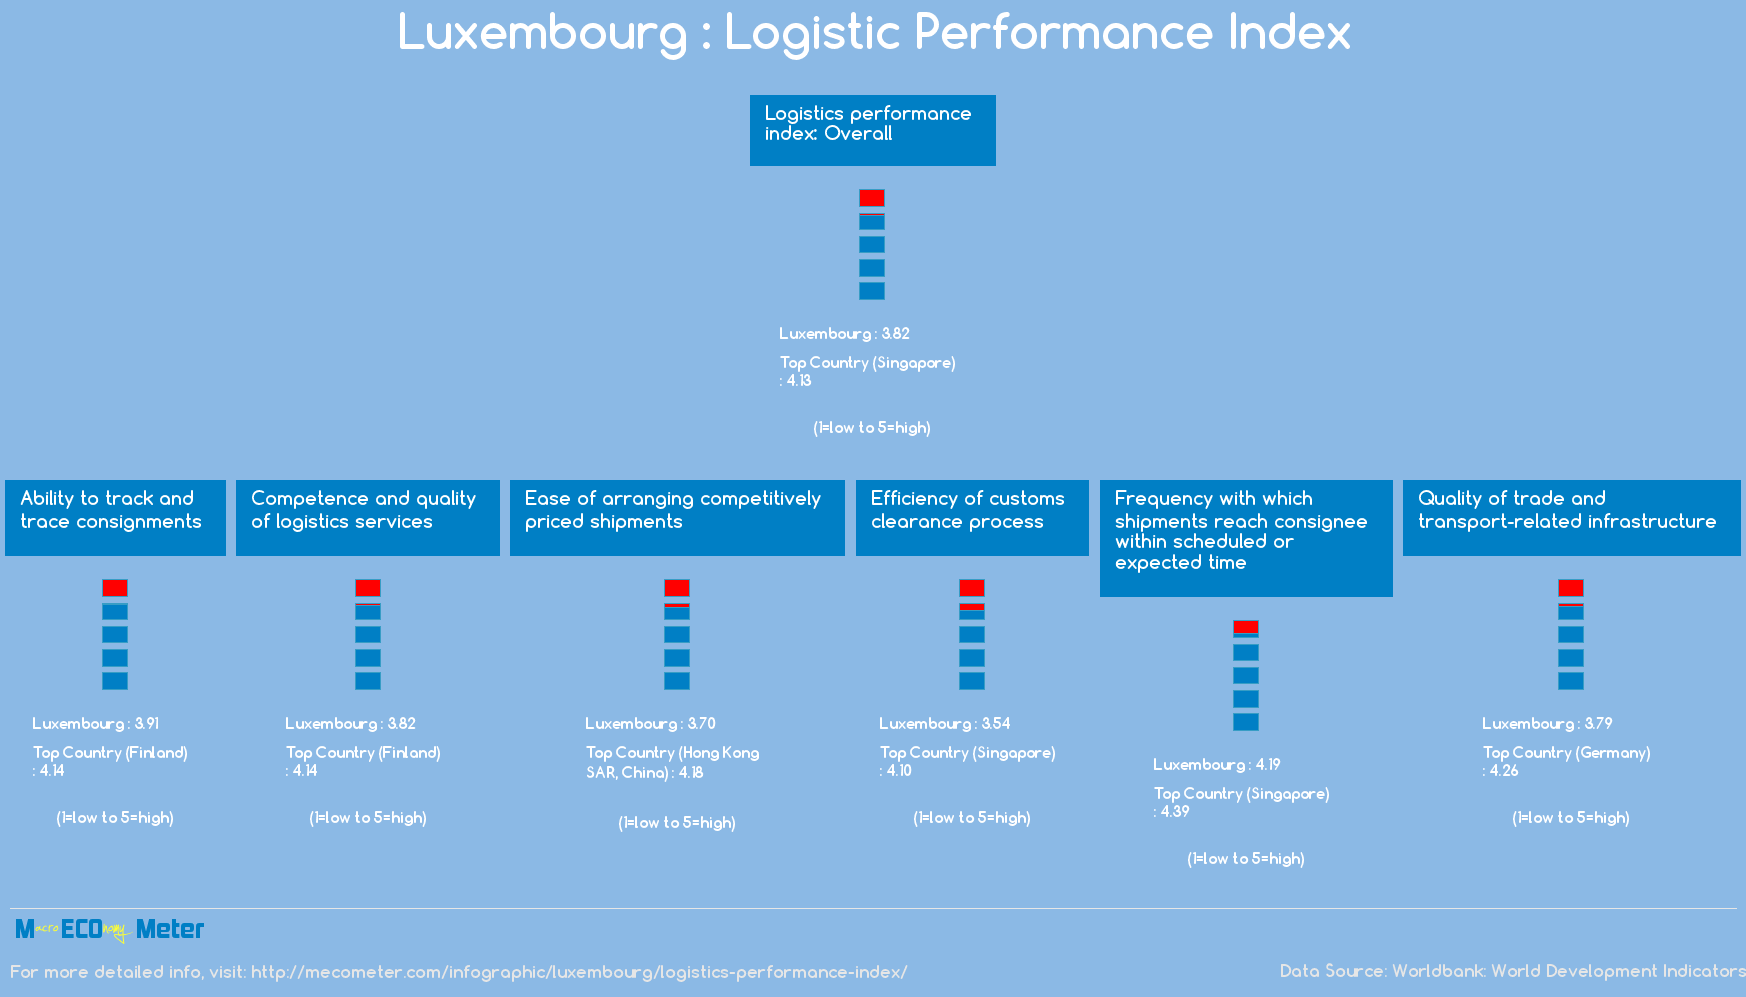 Luxembourg : Logistic Performance Index